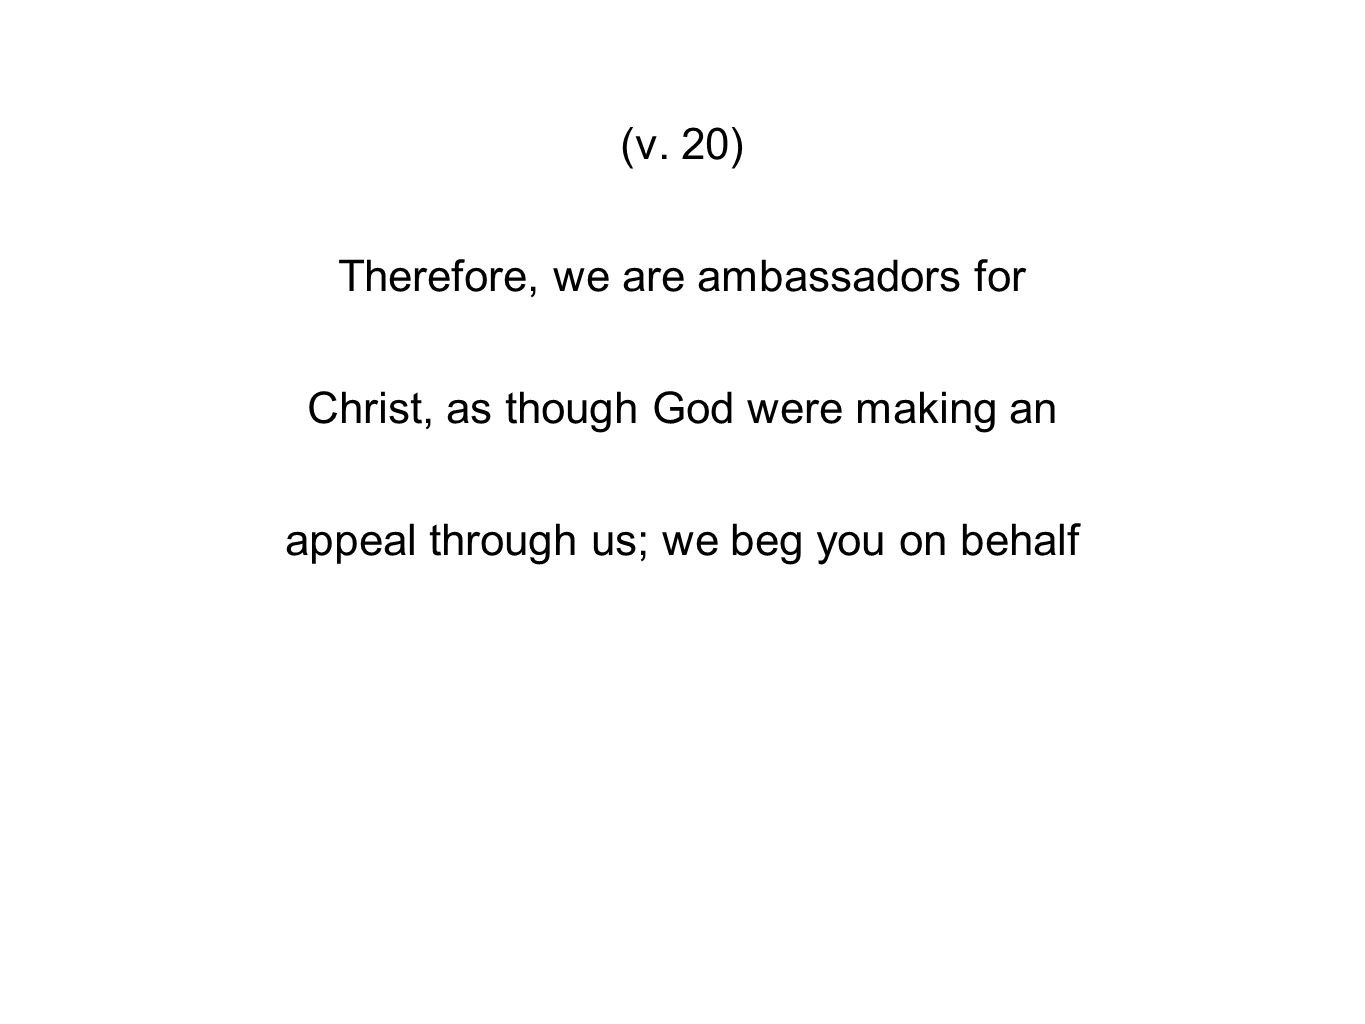 (v. 20) Therefore, we are ambassadors for Christ, as though God were making an appeal through us; we beg you on behalf